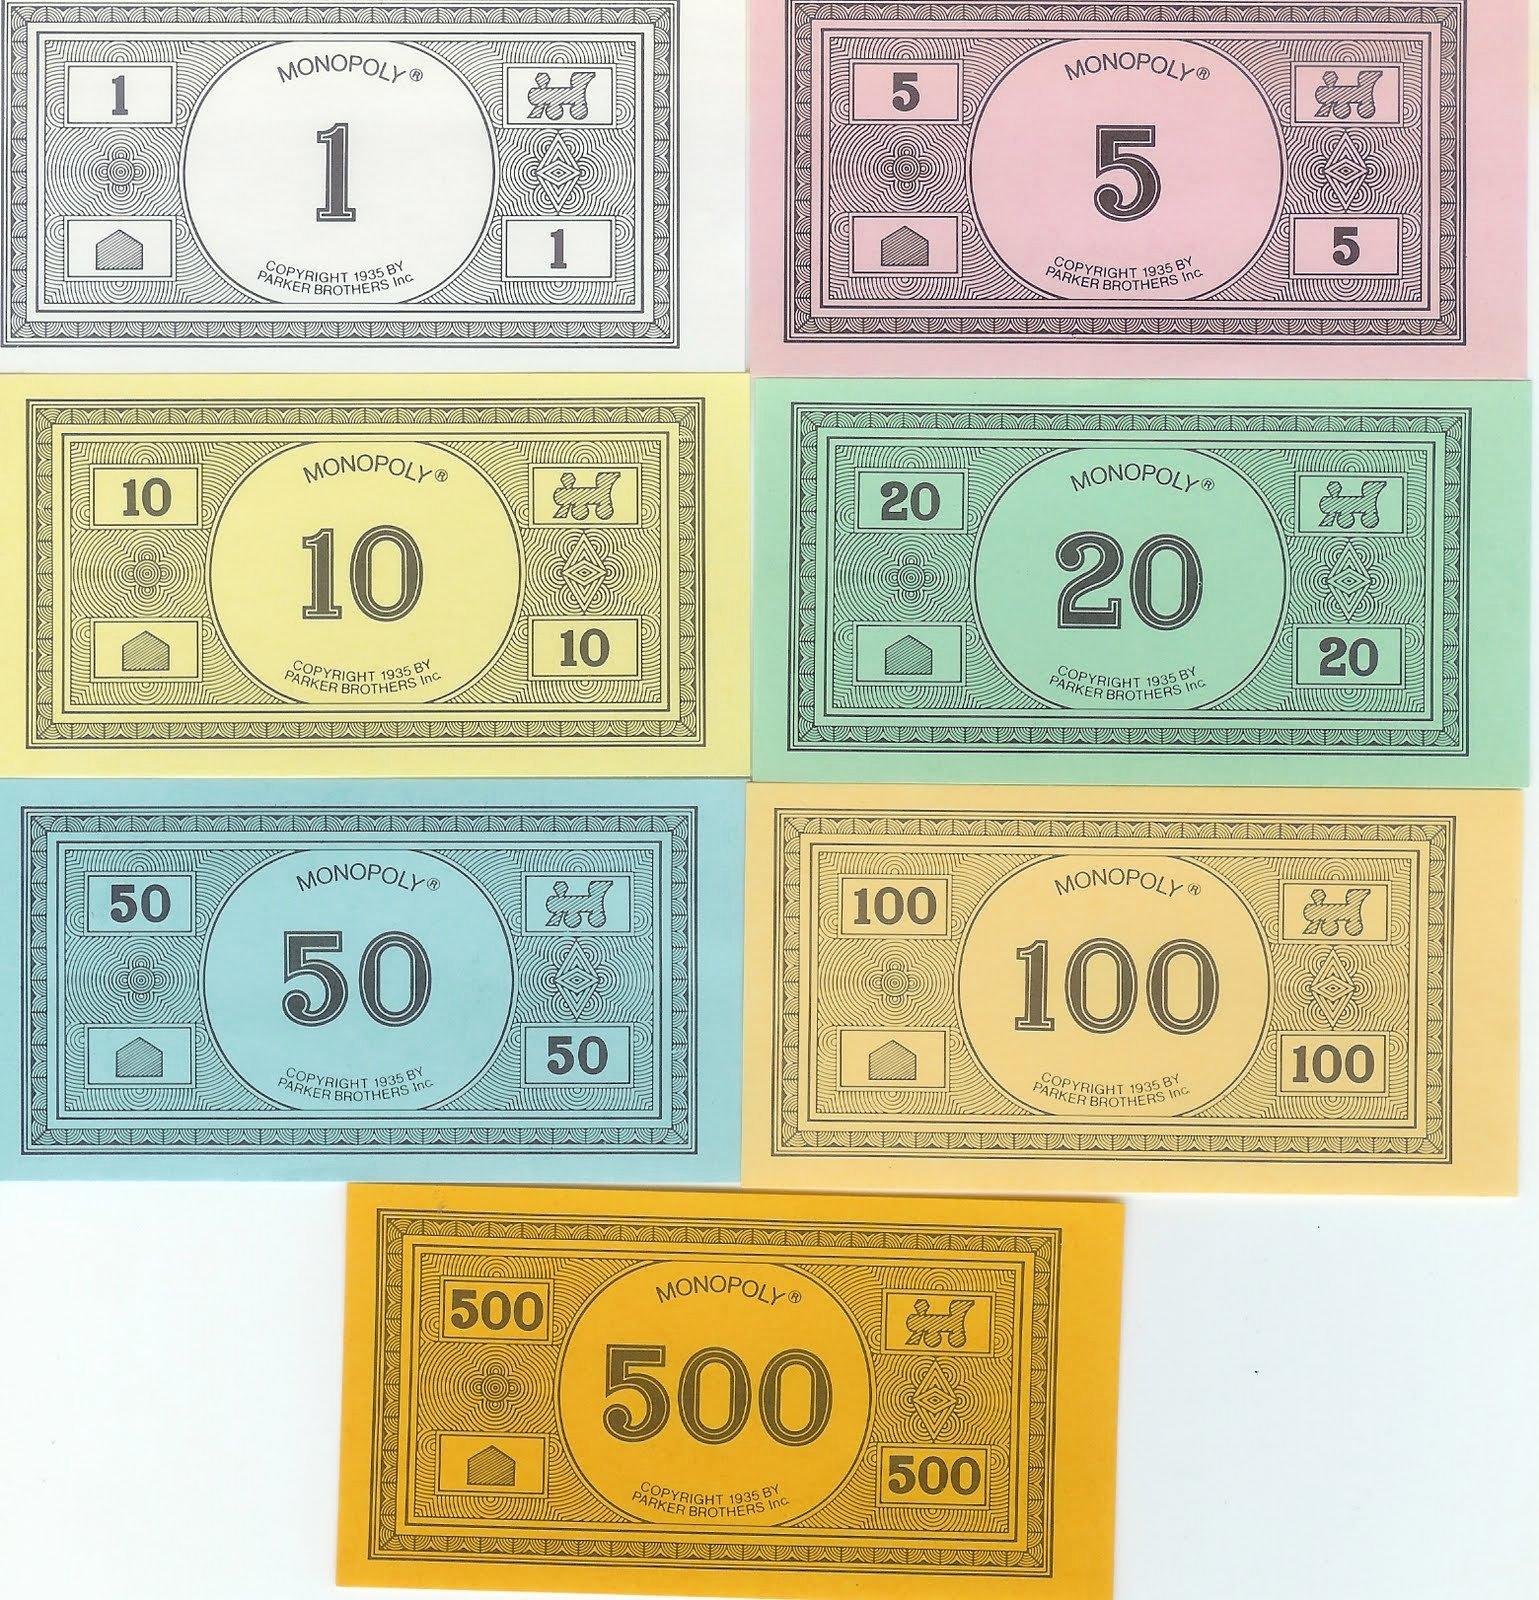 Monopoly Money Template Word Awesome Monopoly Money Template Beepmunk